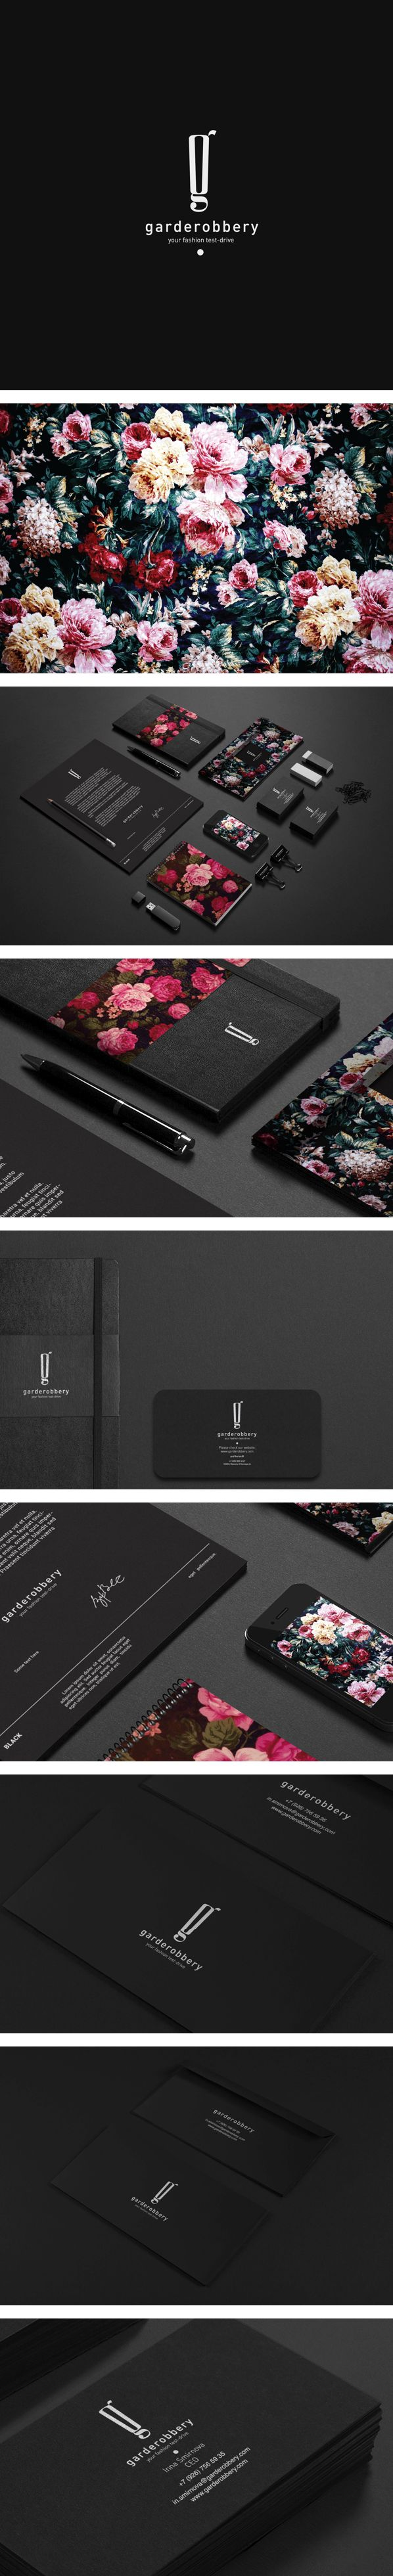 Garderobbery | #stationary #corporate #design #corporatedesign #identity #branding #marketing < repinned by www.BlickeDeeler.de | Take a look at www.LogoGestaltung-Hamburg.de